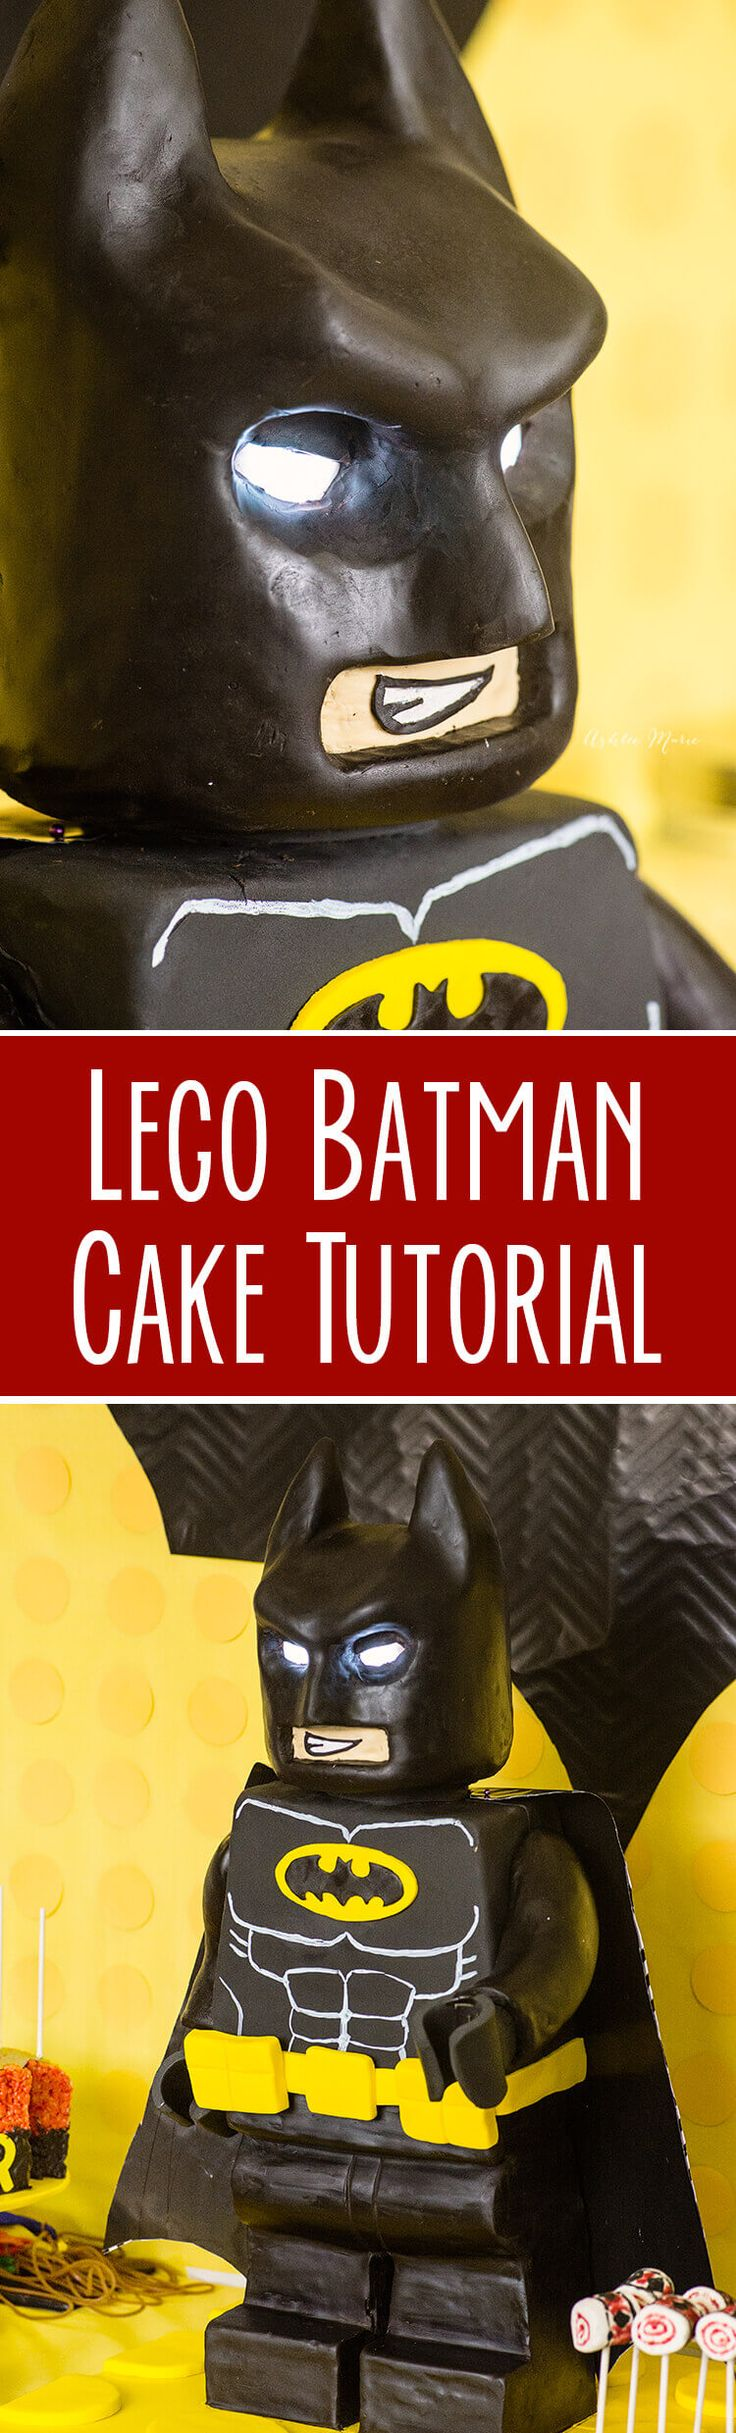 Check out this amazing video tutorial for how to make a standing Lego batman cake - building the internal support system and more - can be used for ANY Lego character cake - full internal (Batman Cake)